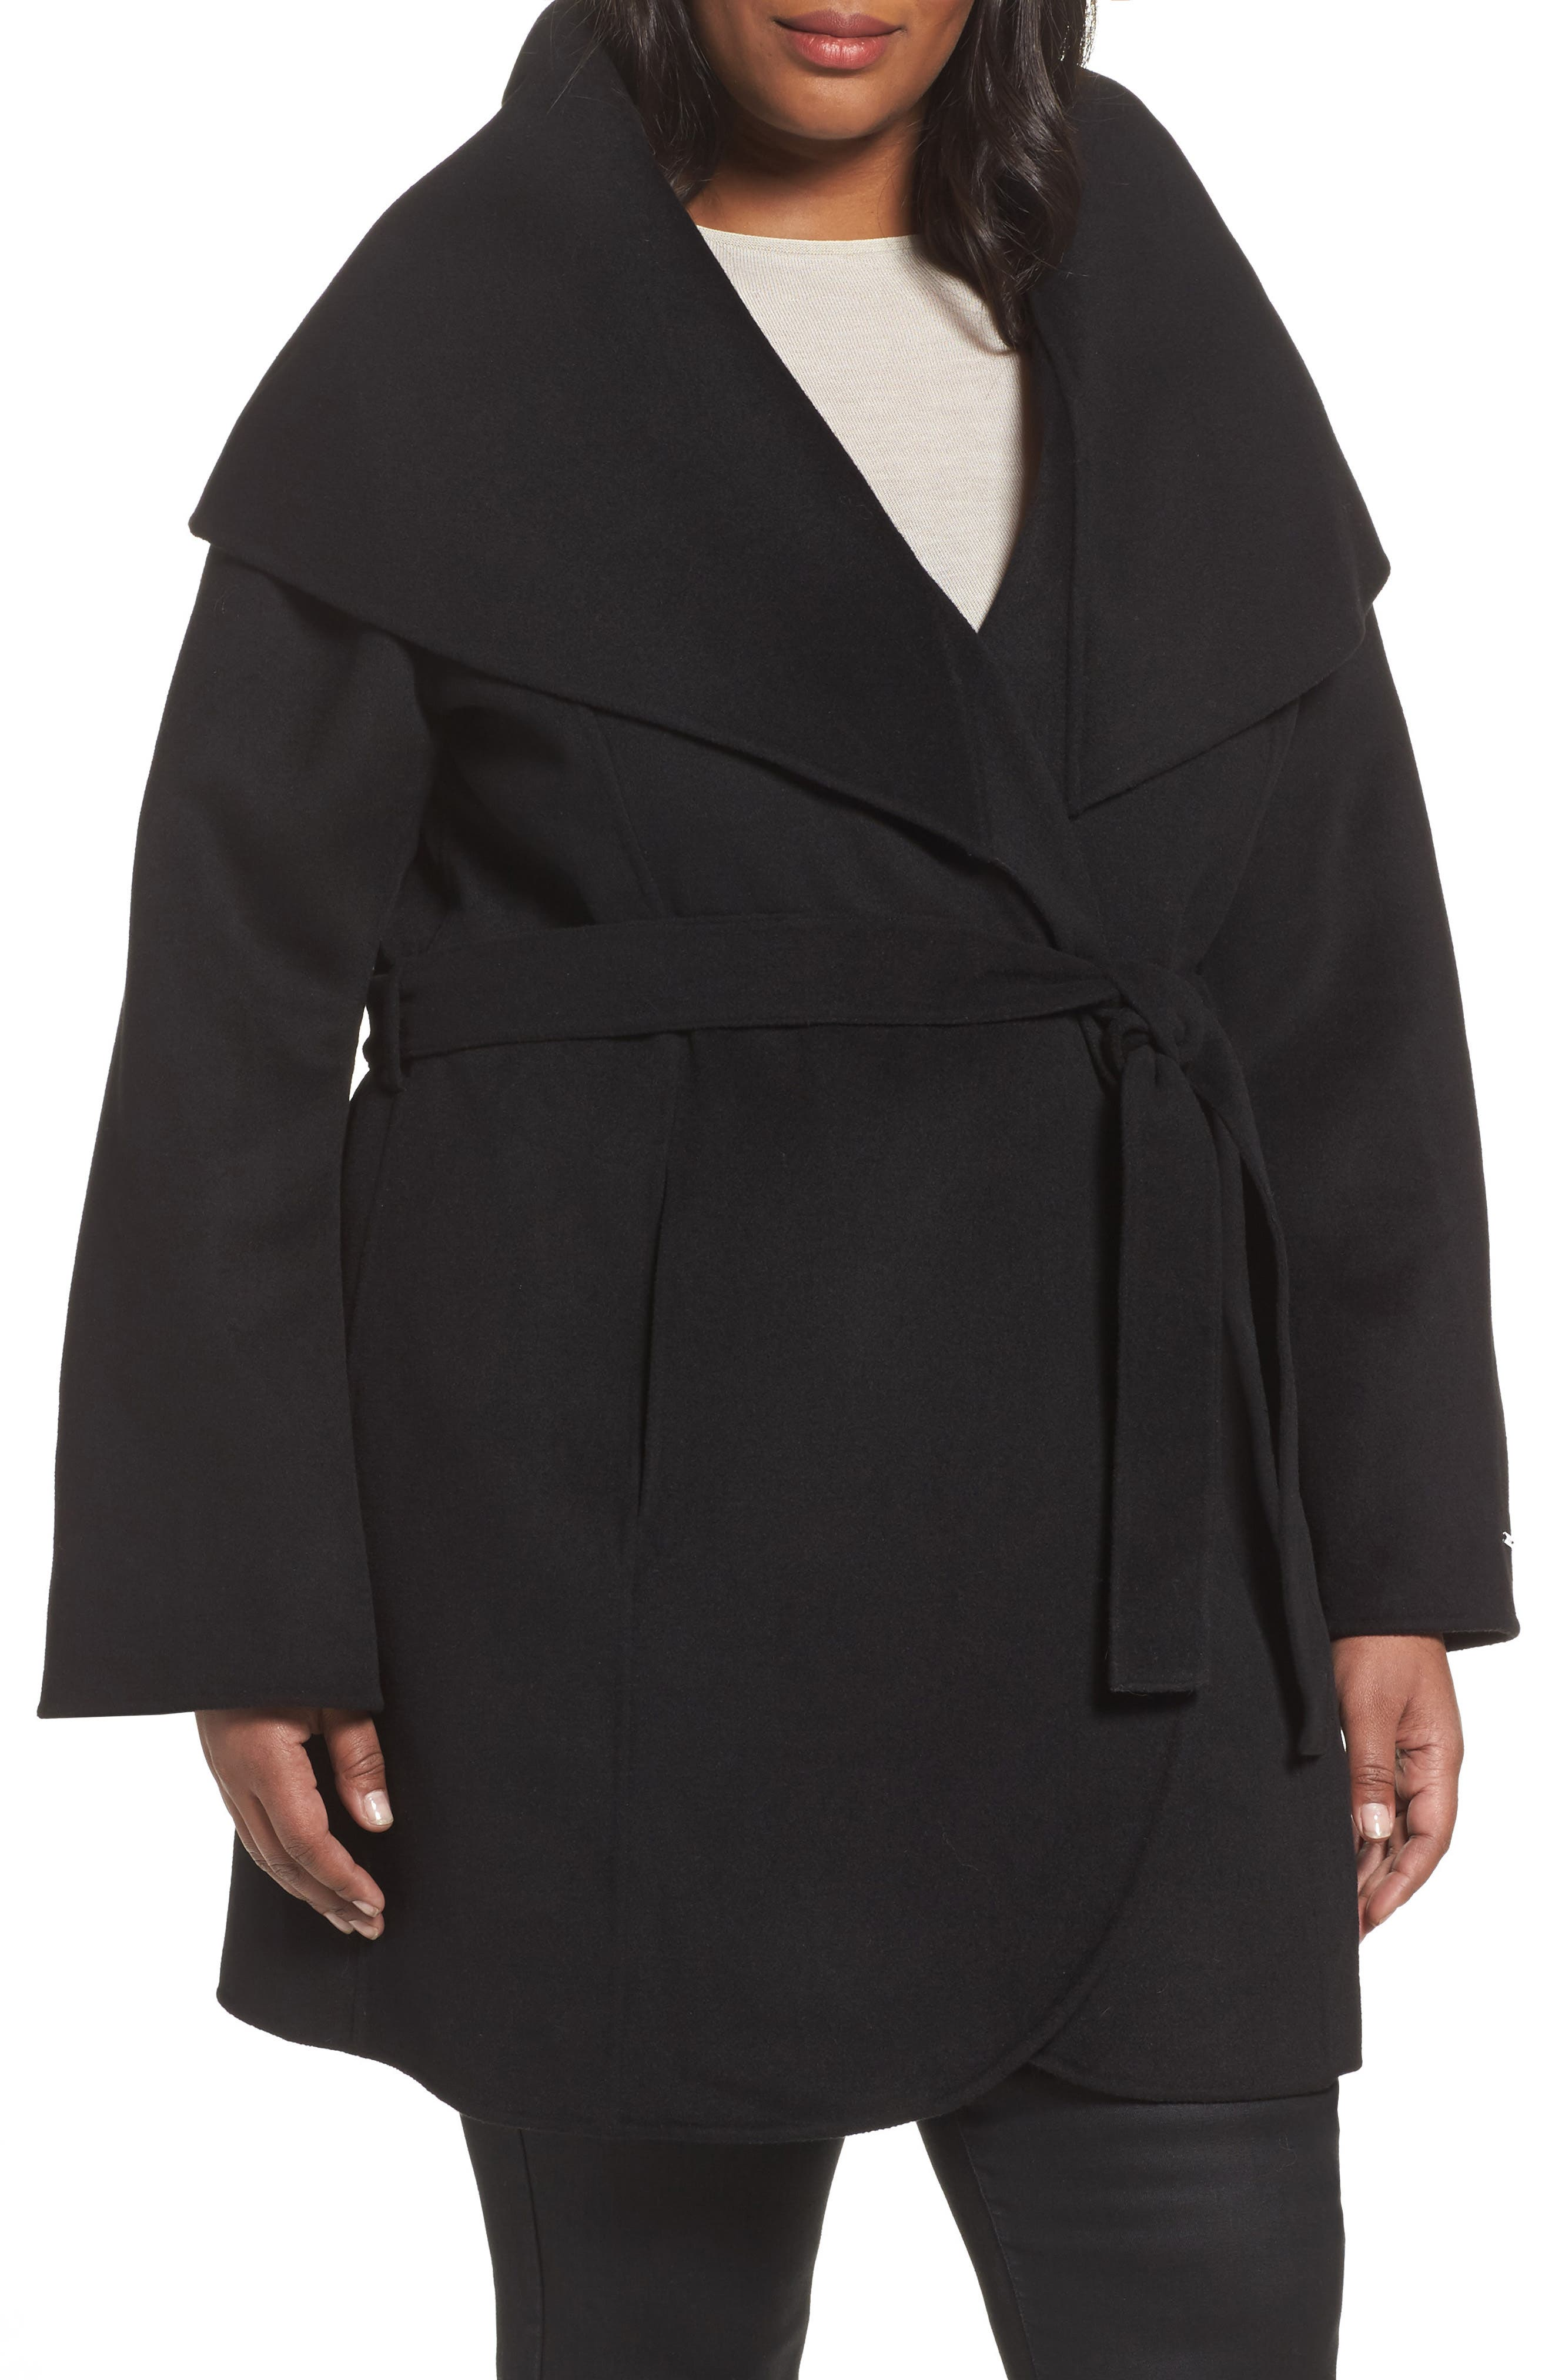 Maria Double Face Wool Blend Wrap Coat,                             Main thumbnail 1, color,                             Black